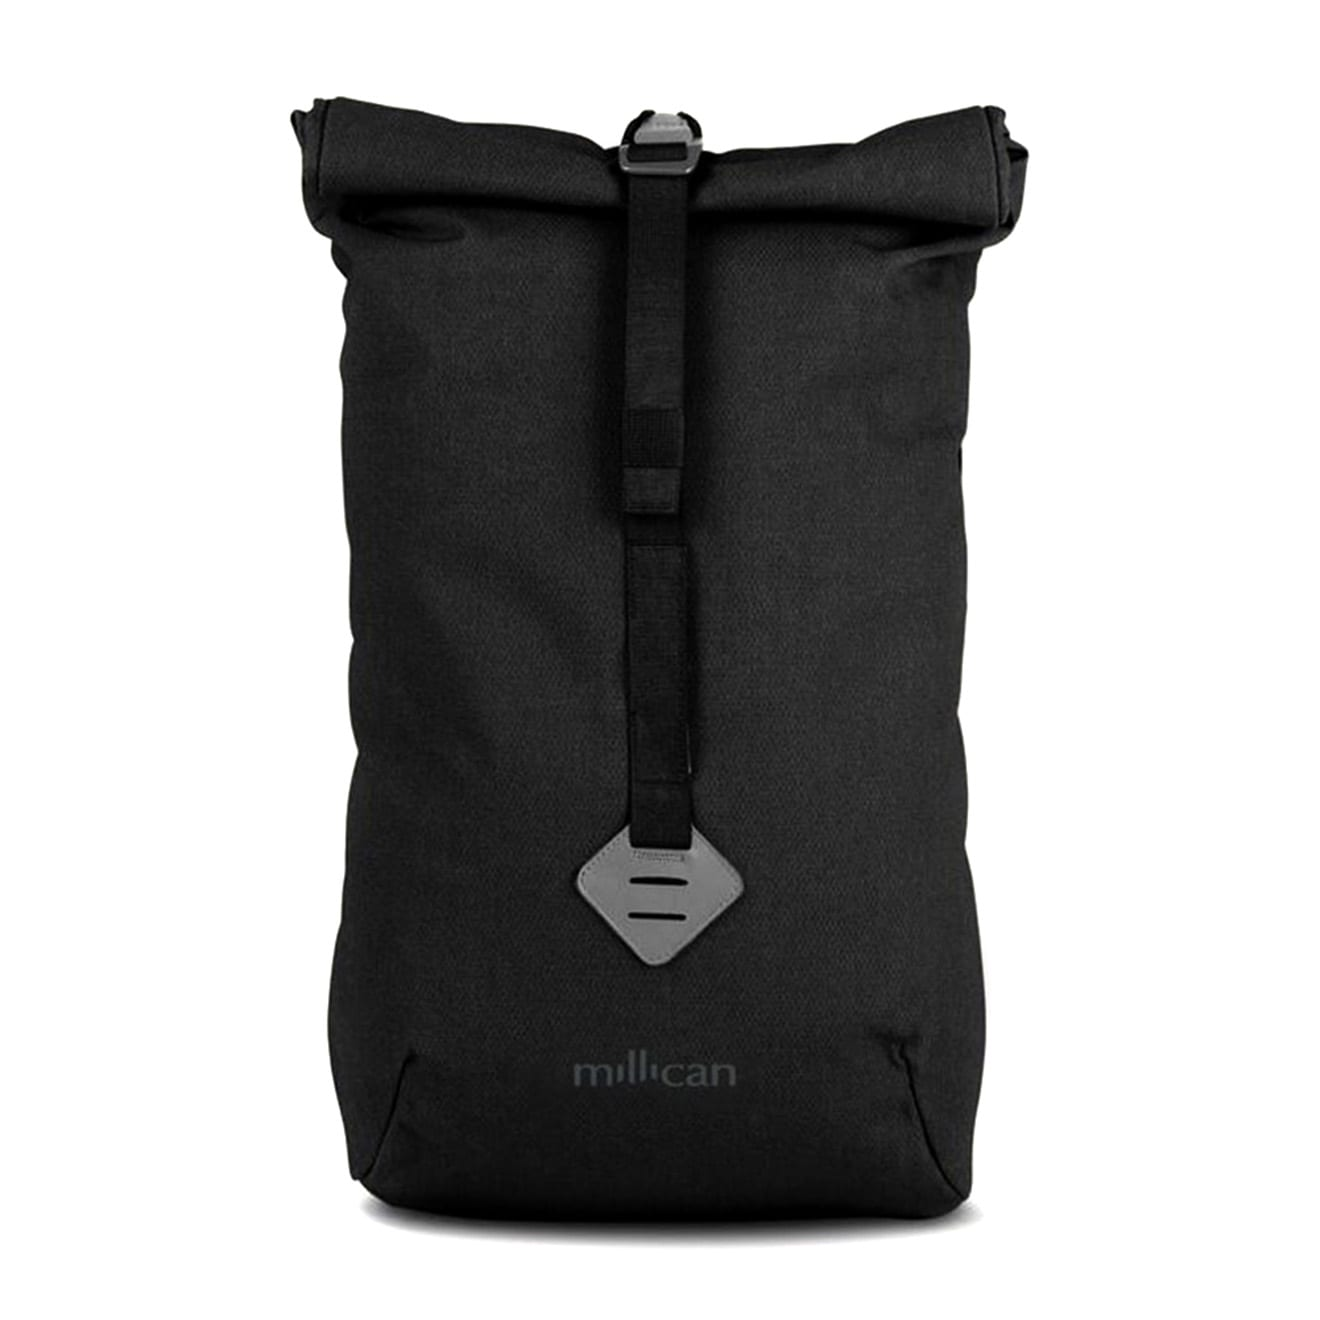 Millican Smith The Roll Pack 15L Graphite